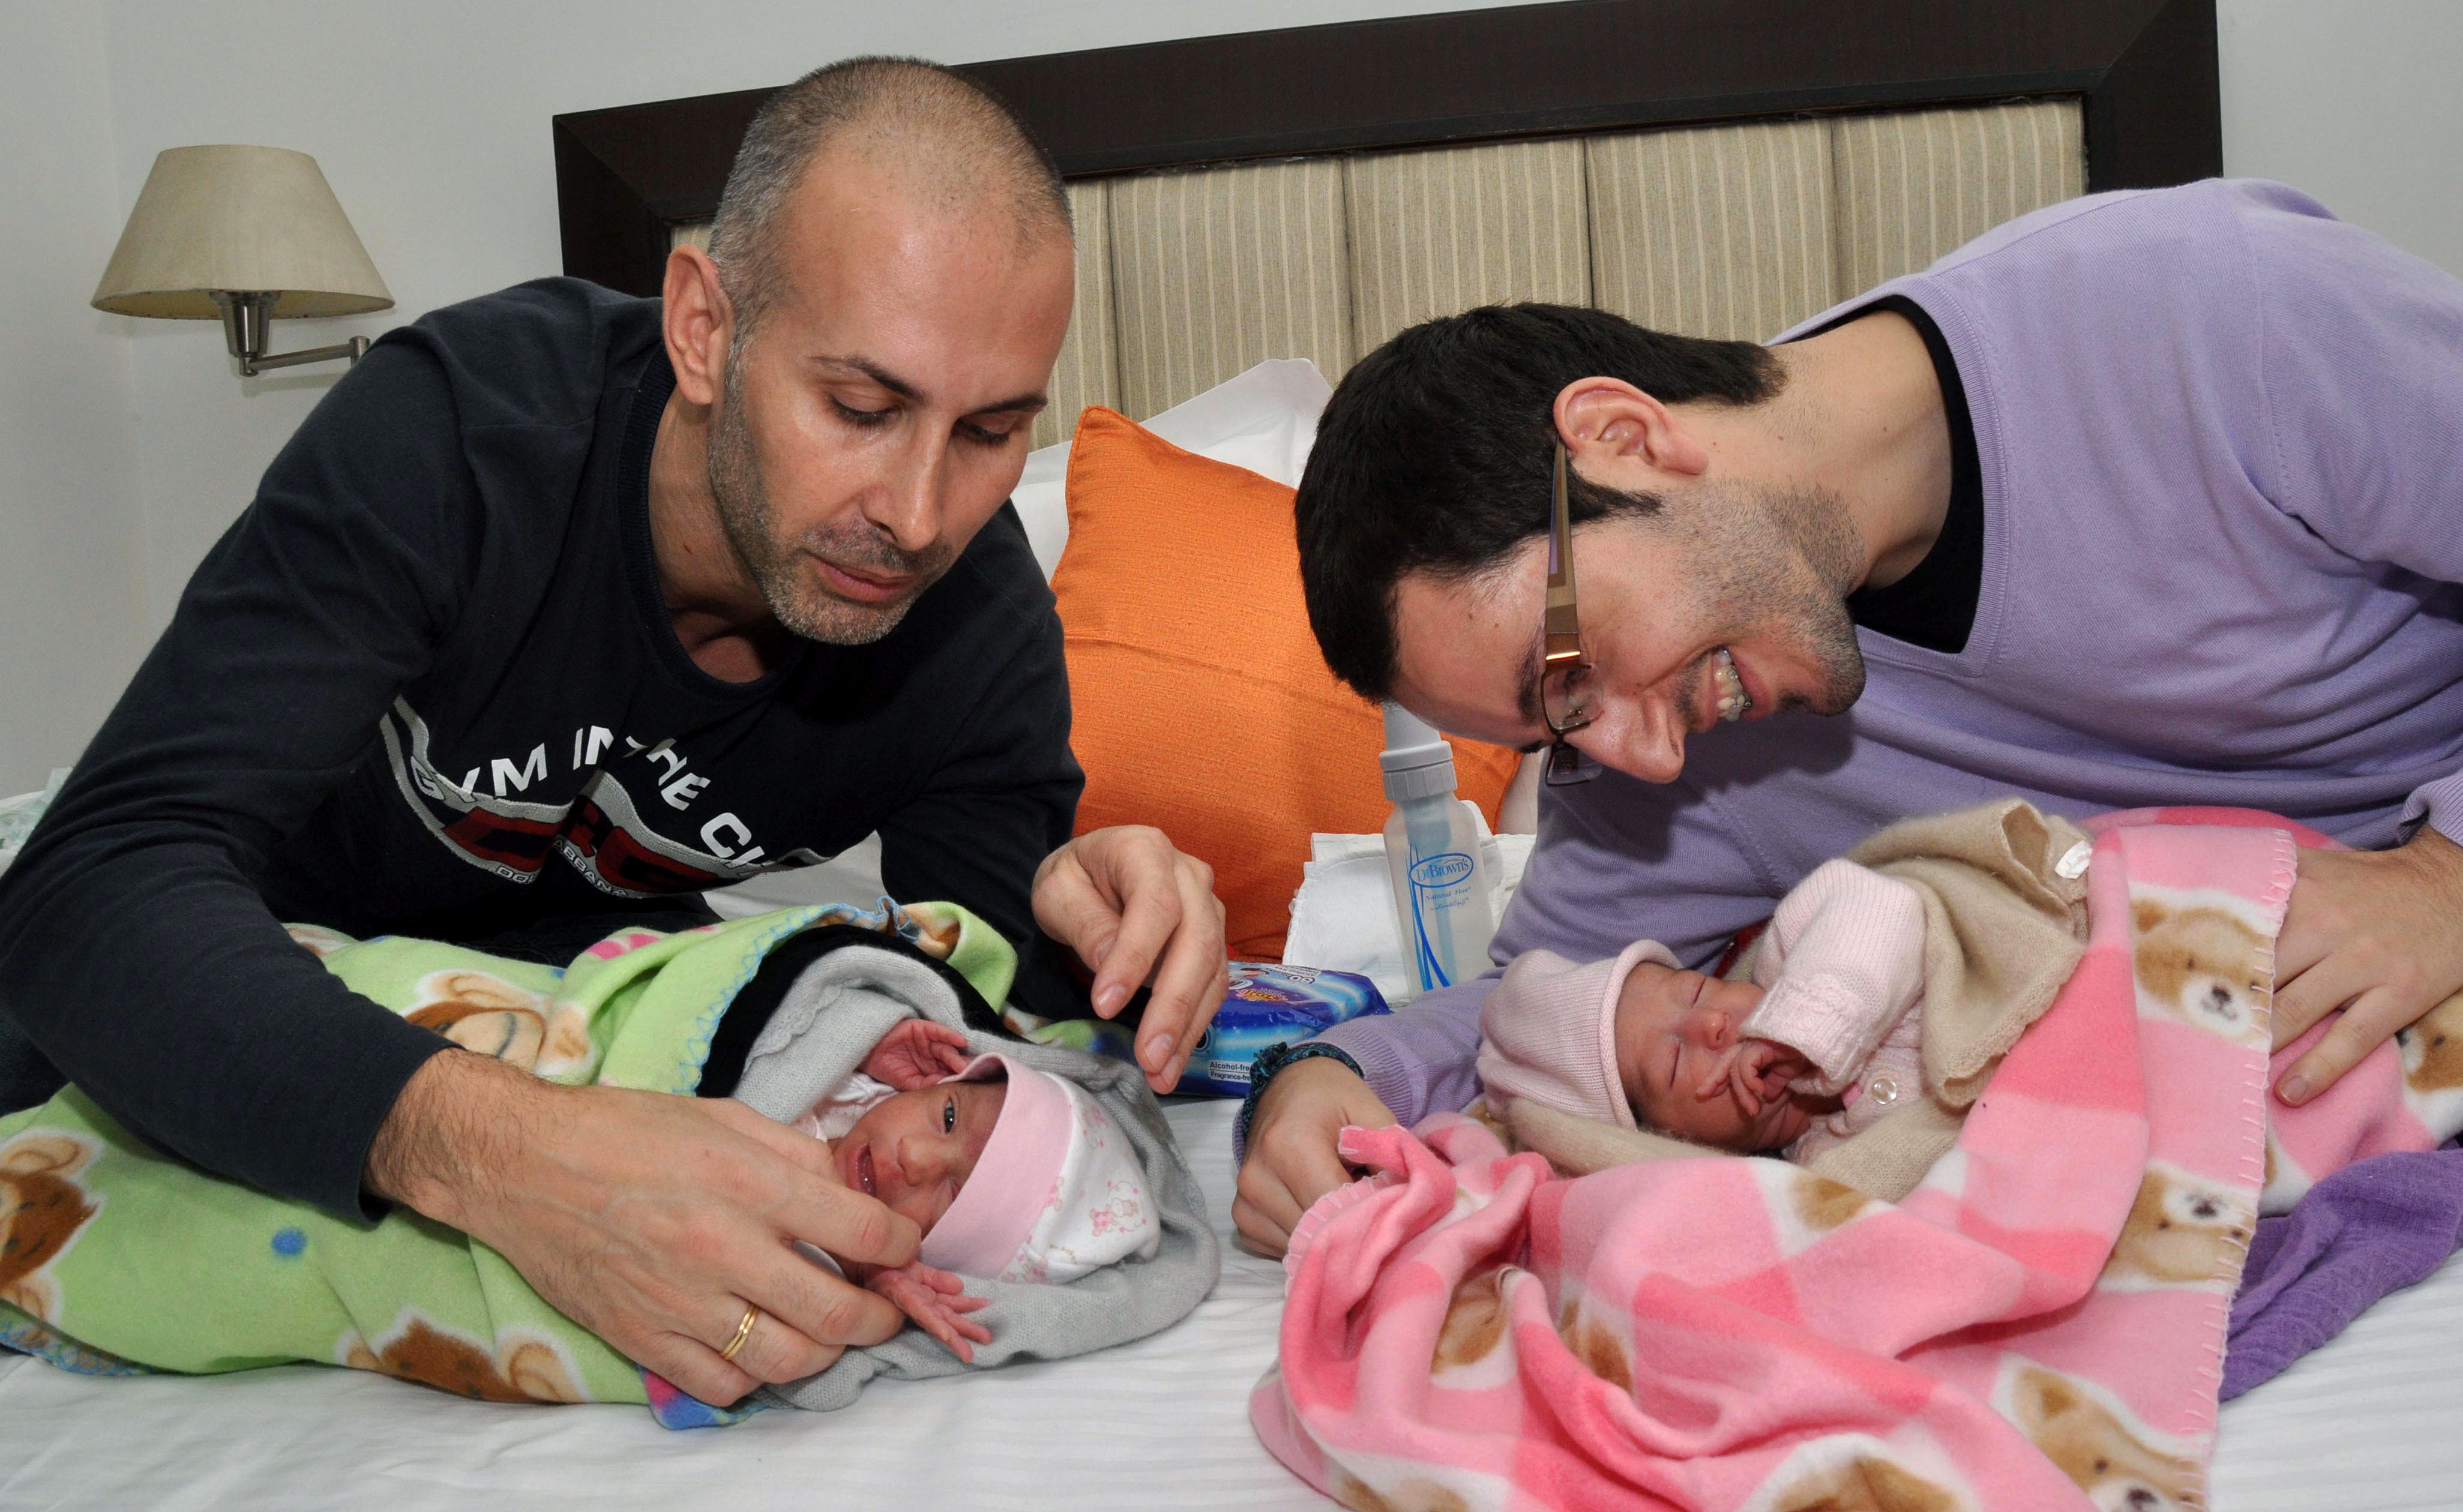 In this photograph taken on February 17, 2011, Spanish couple Mauro (L) and Juan Carlos embrace their new born twin girls at a hospital in New Delhi, after an Indian surrogate mother gave birth to the children.